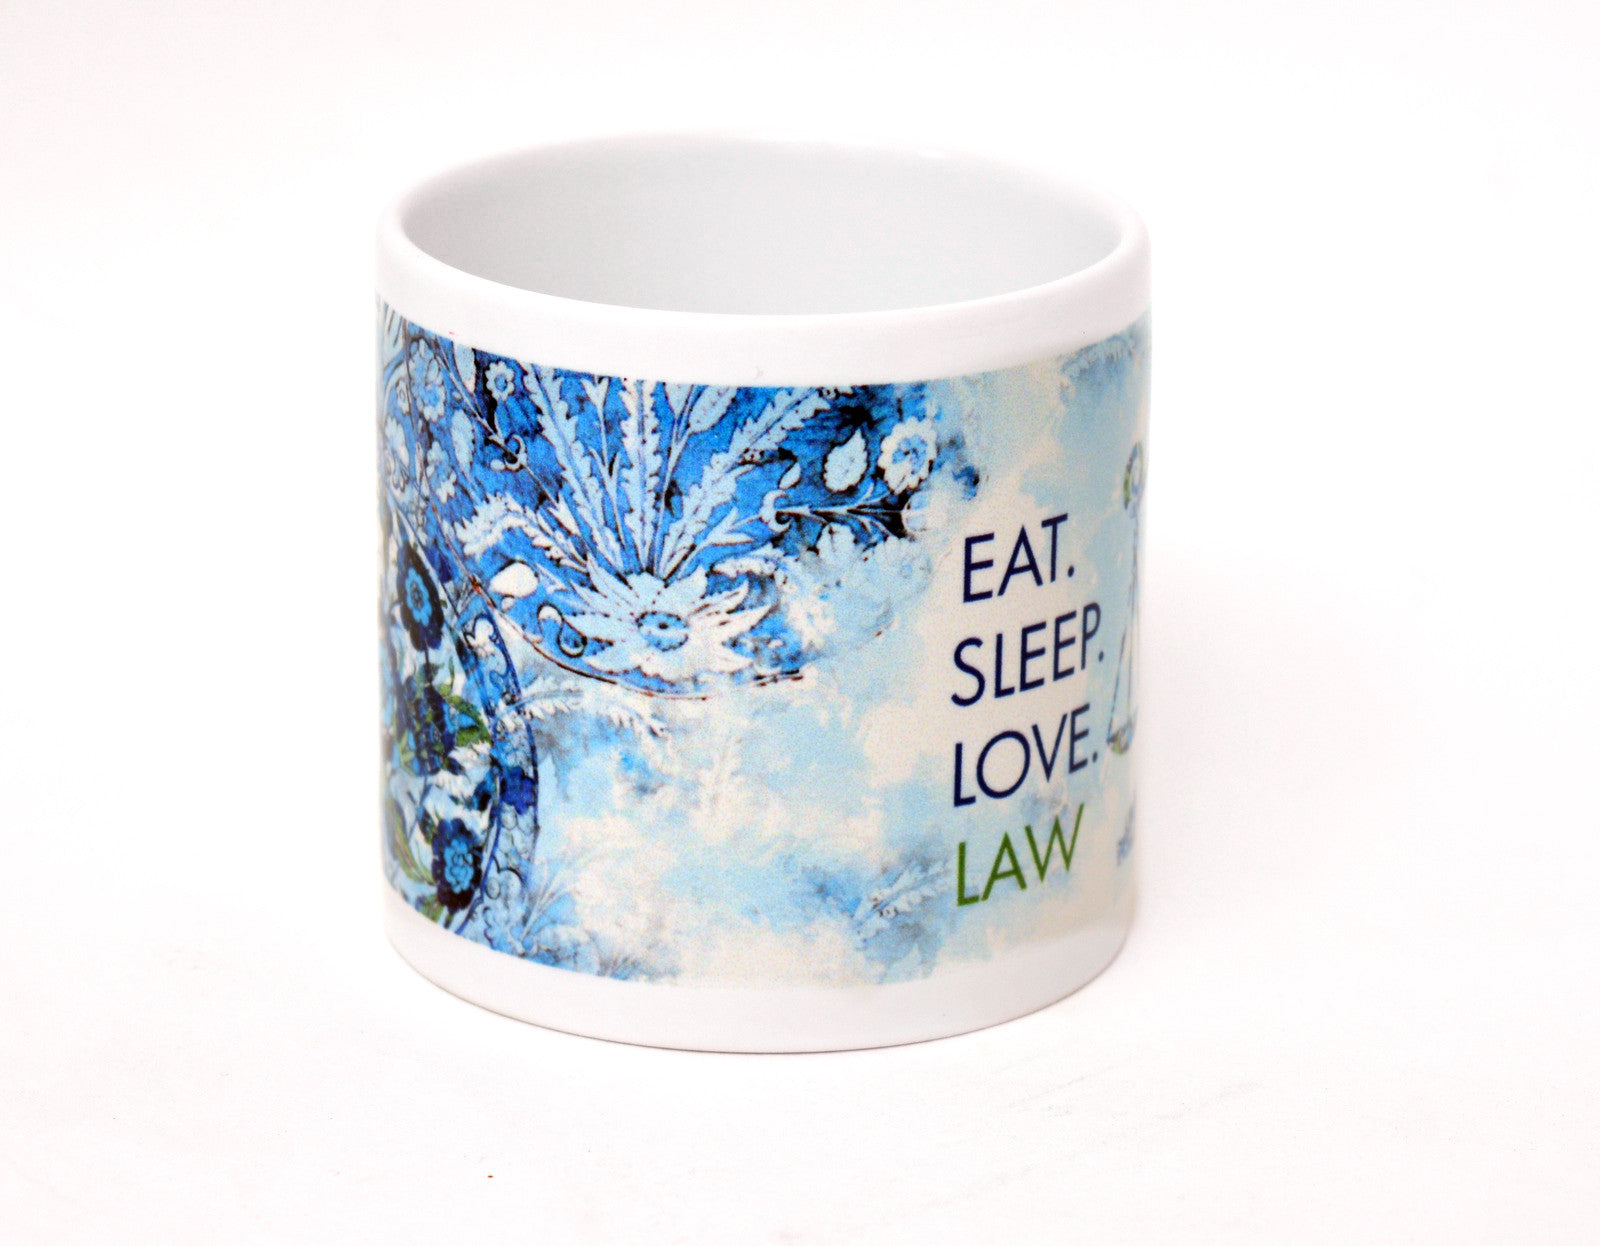 Eat, Sleep, Love, Law 6 oz mug - set of 4 - Law Suits and More